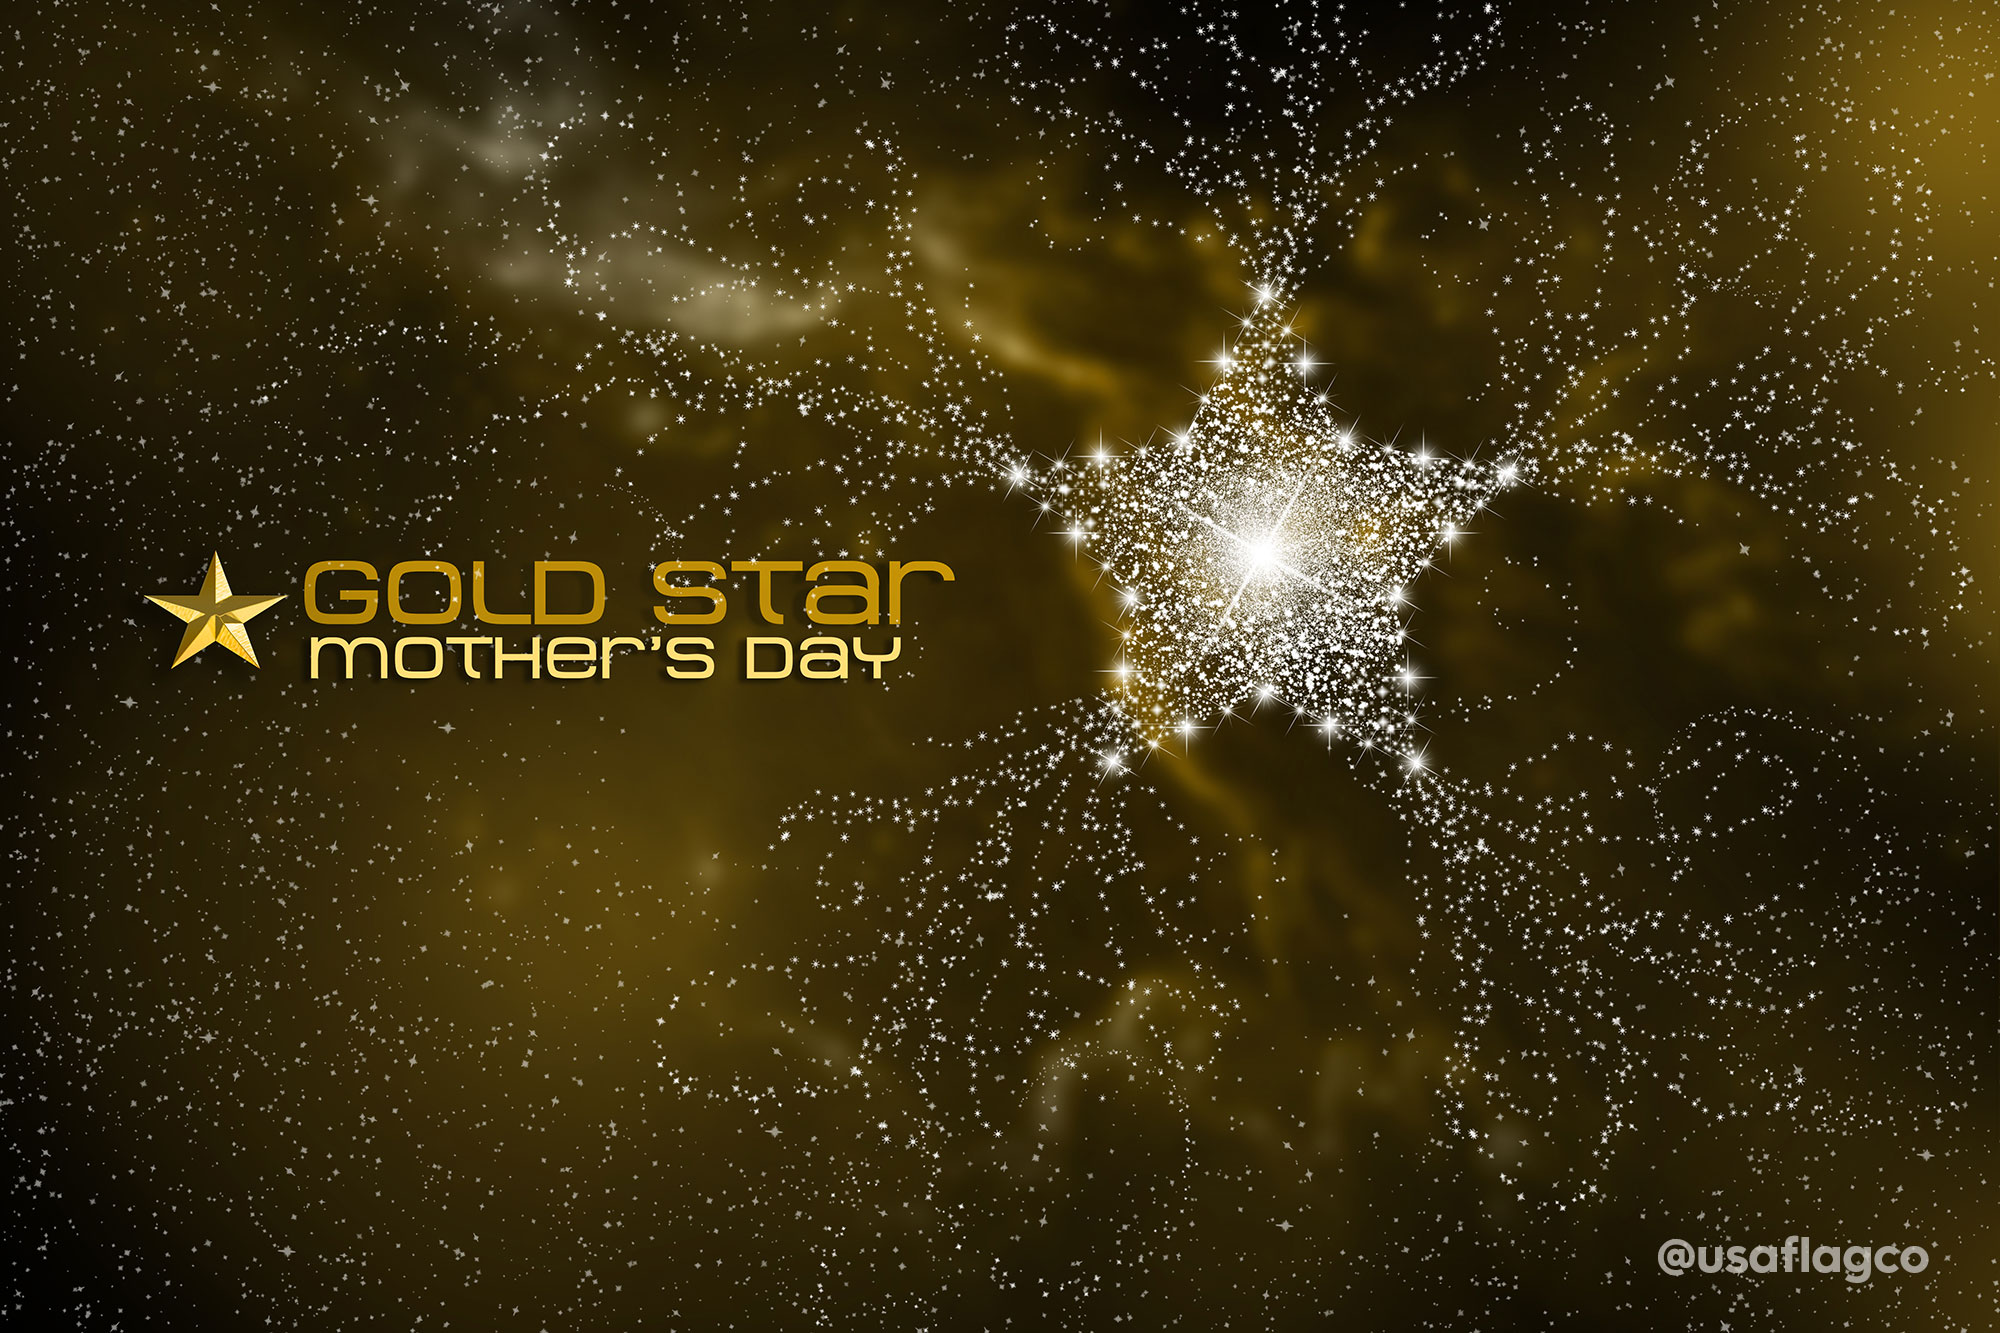 A Gold Star Mother is a mother who has lost her son or daughter in the line of duty while in the U.S. Armed Forces. Gold Star Mother's day is an American holiday observed on the last Sunday of September.